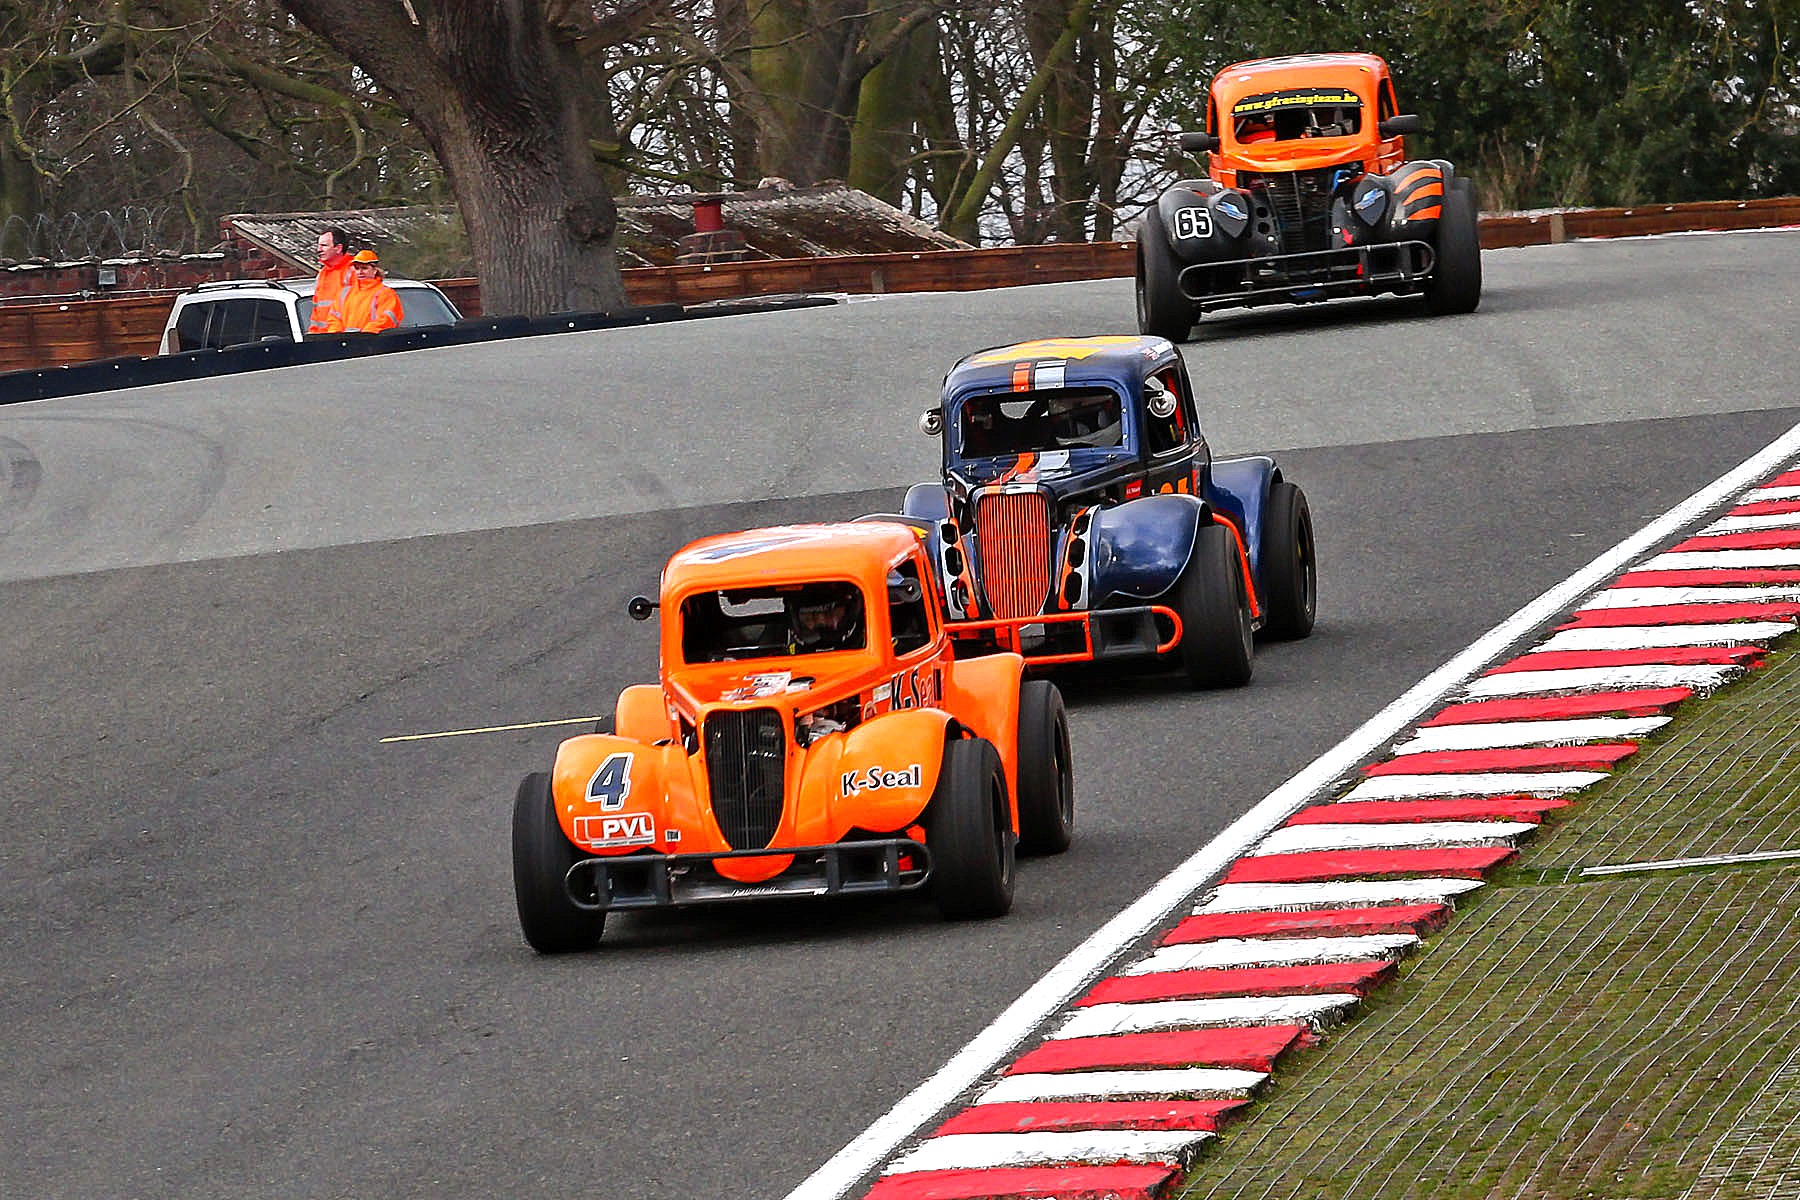 2015 - Round 1 - Oulton Park Gallery Image 55